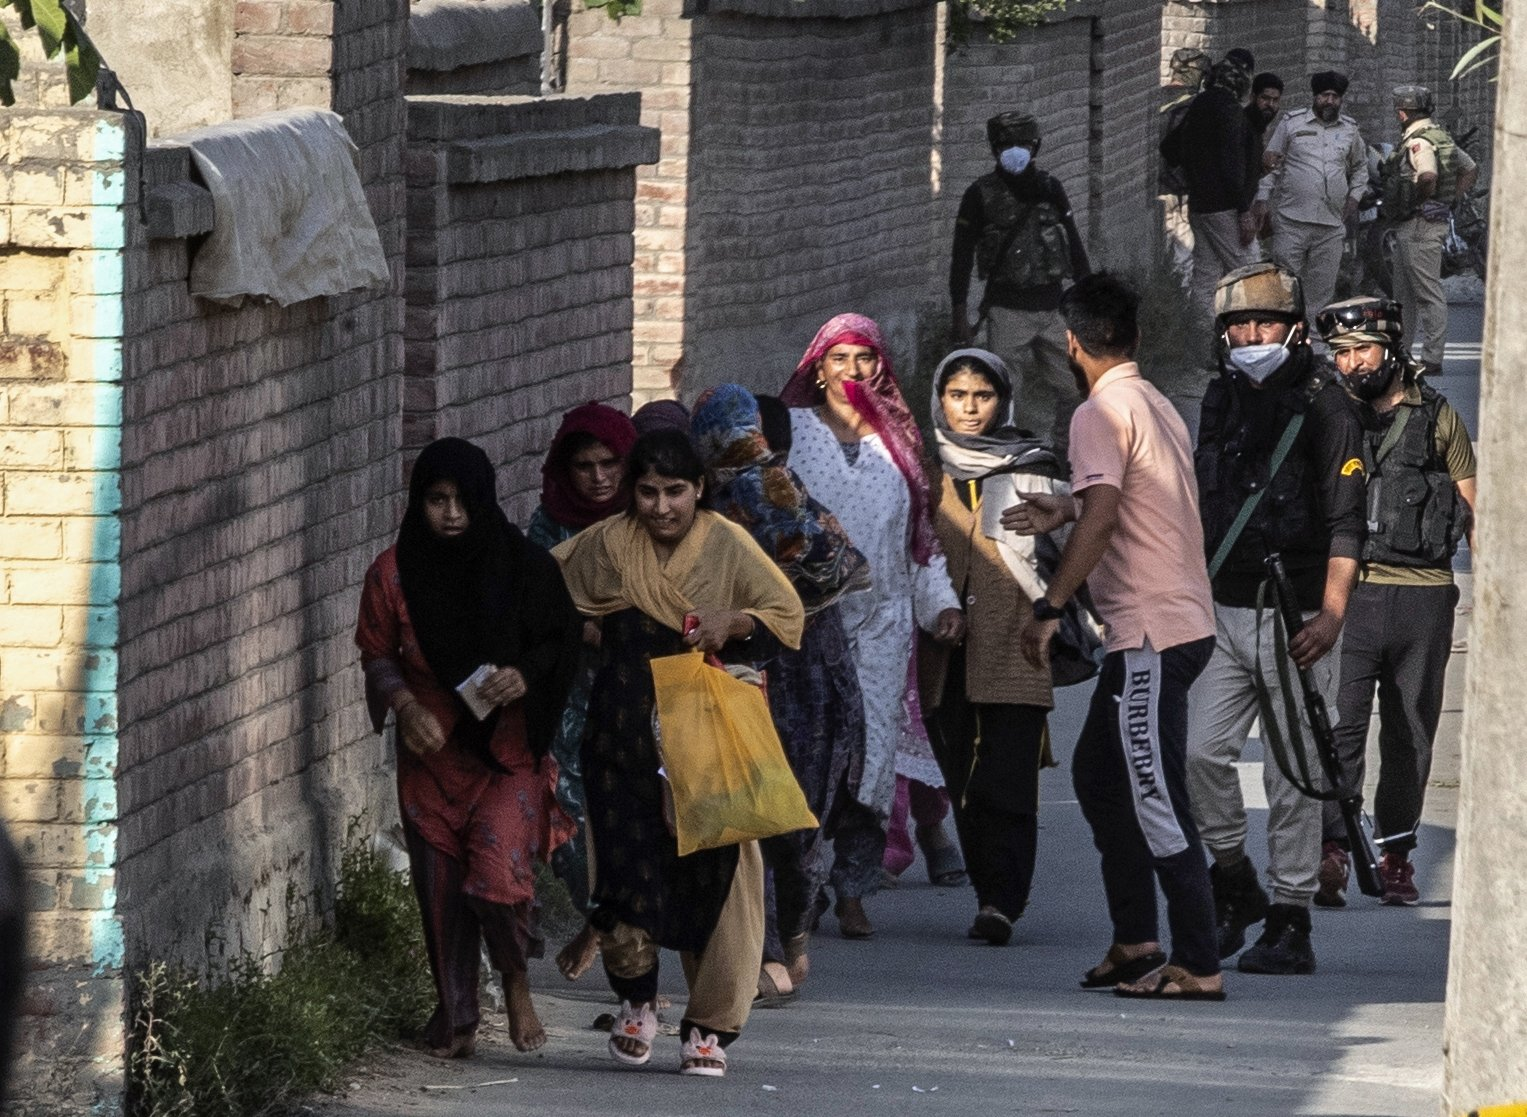 Kashmiri women and children rush for safer places near the site of a gun battle between security forces and suspected rebels on the outskirts of Srinagar, Indian-controlled Kashmir, June 28, 2021. (AP Photo)